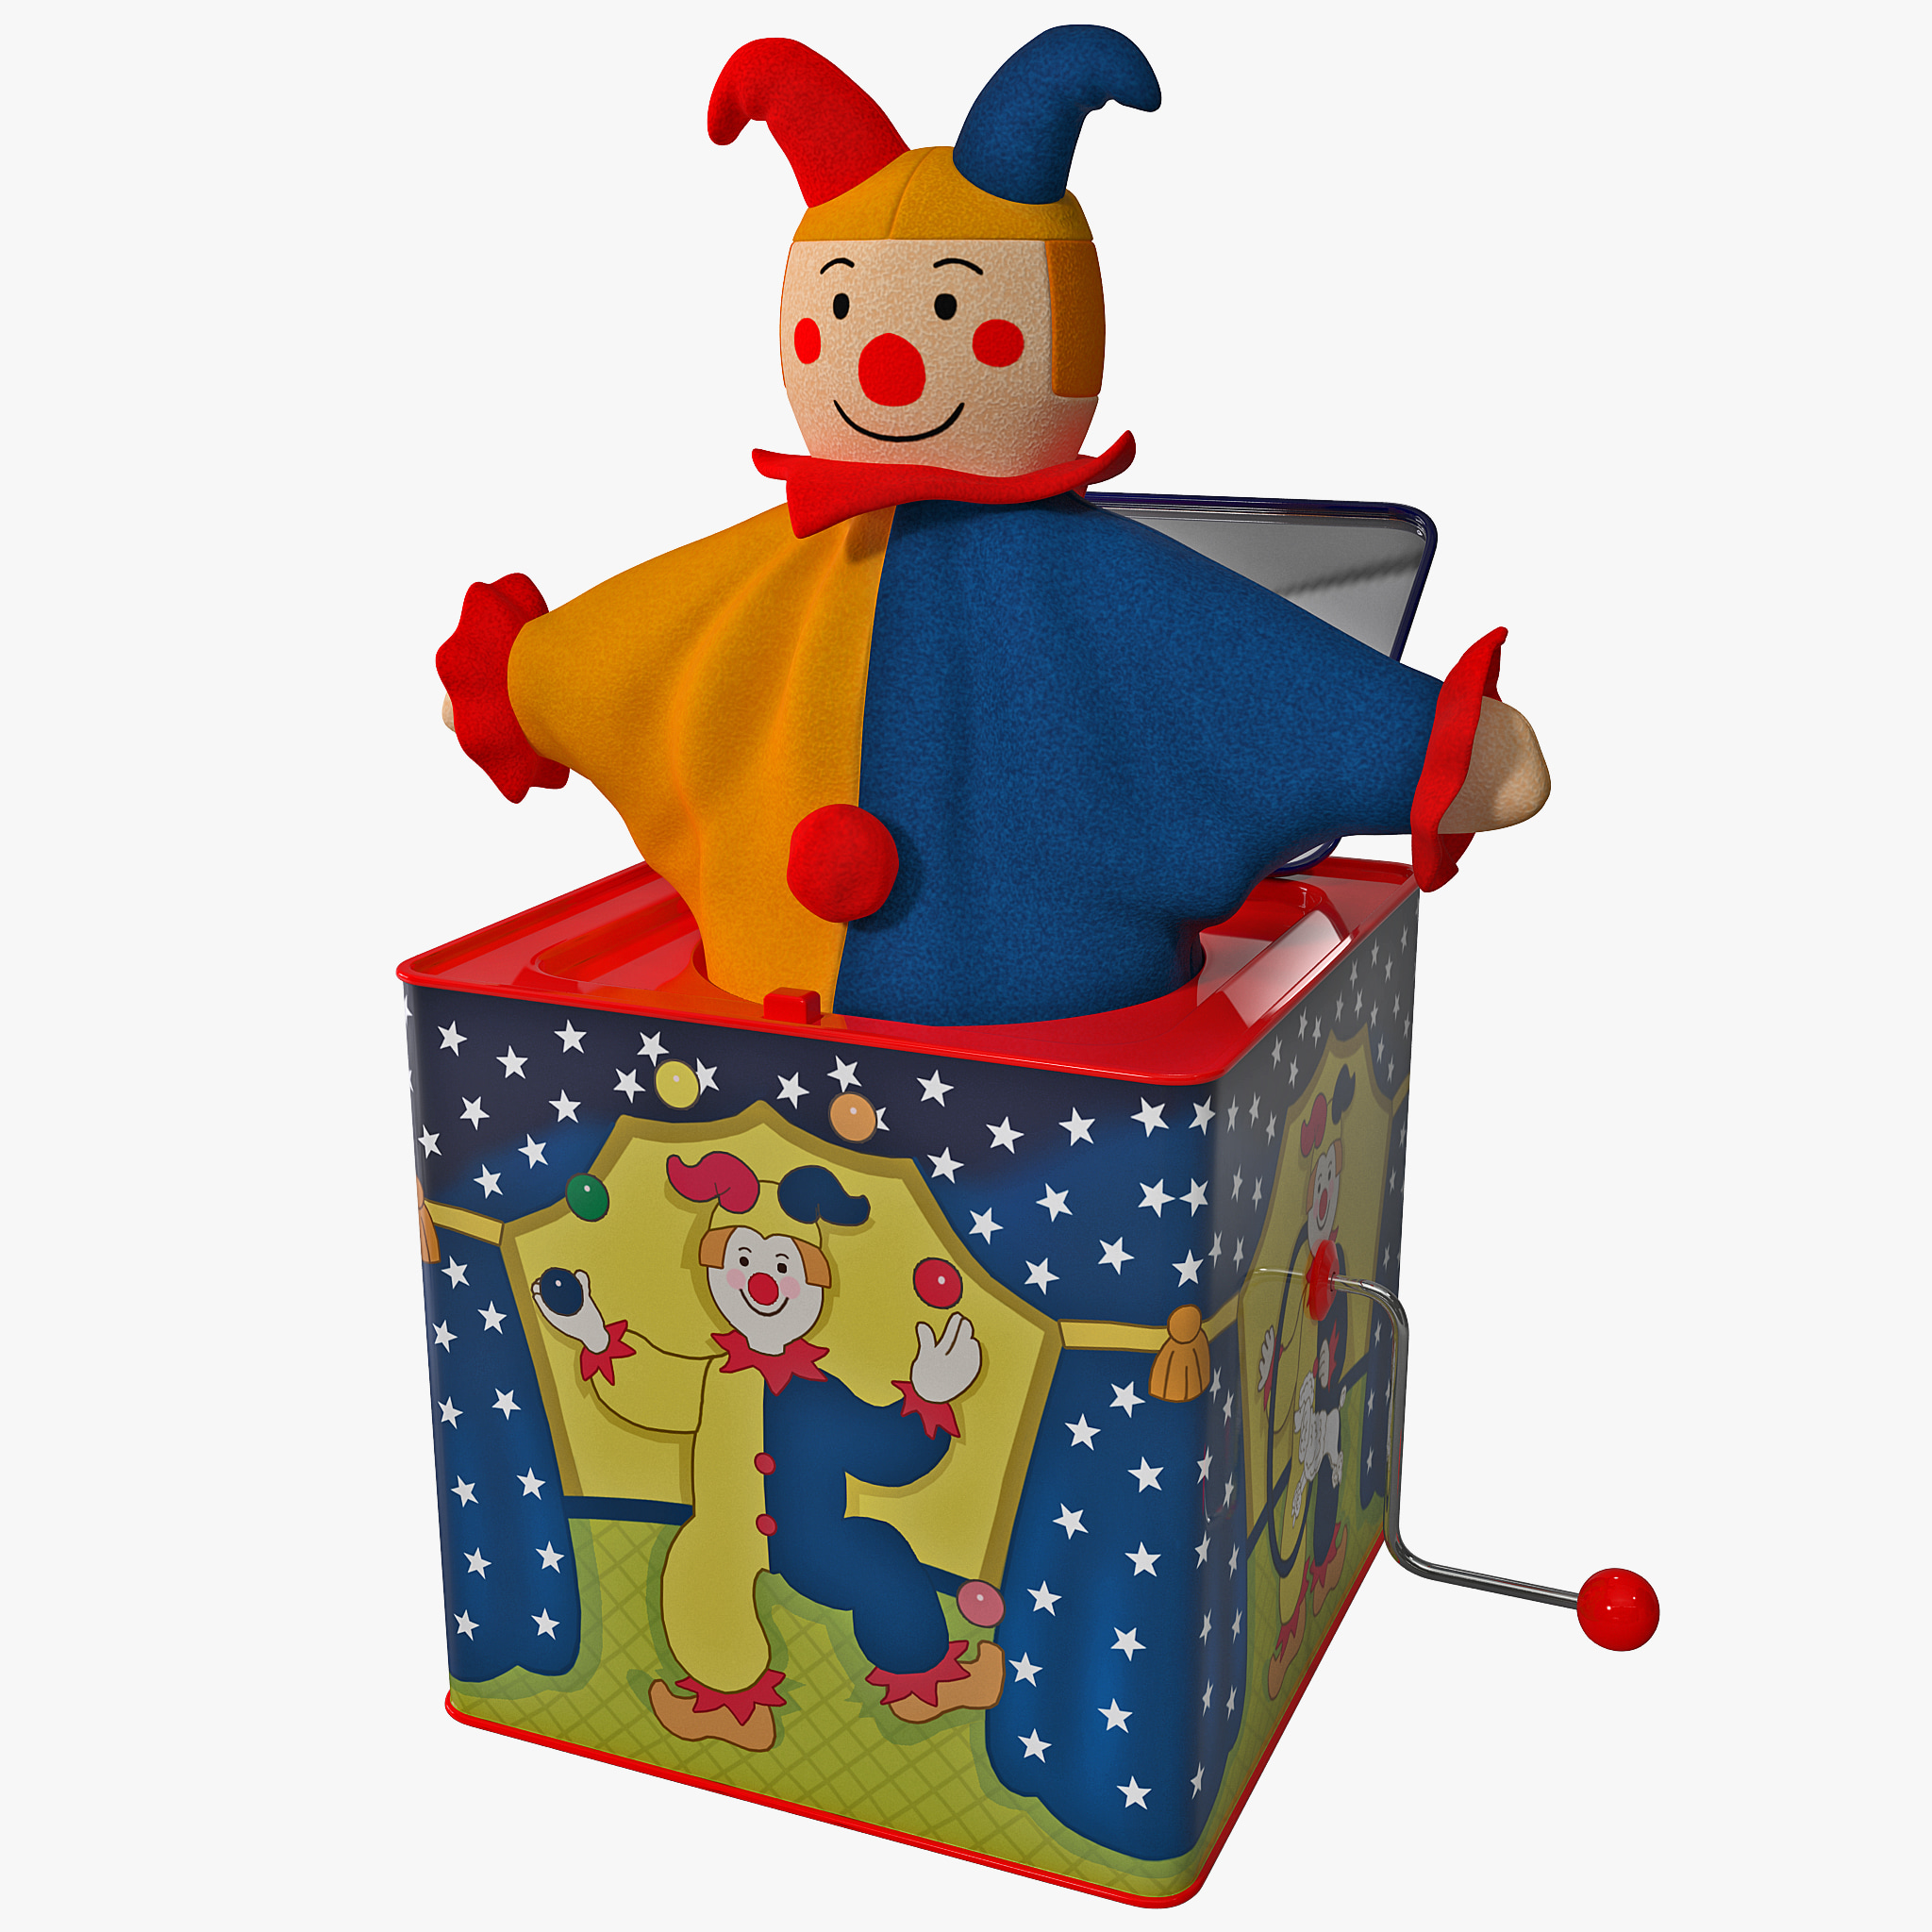 Jack In The Box Toy_1.jpg